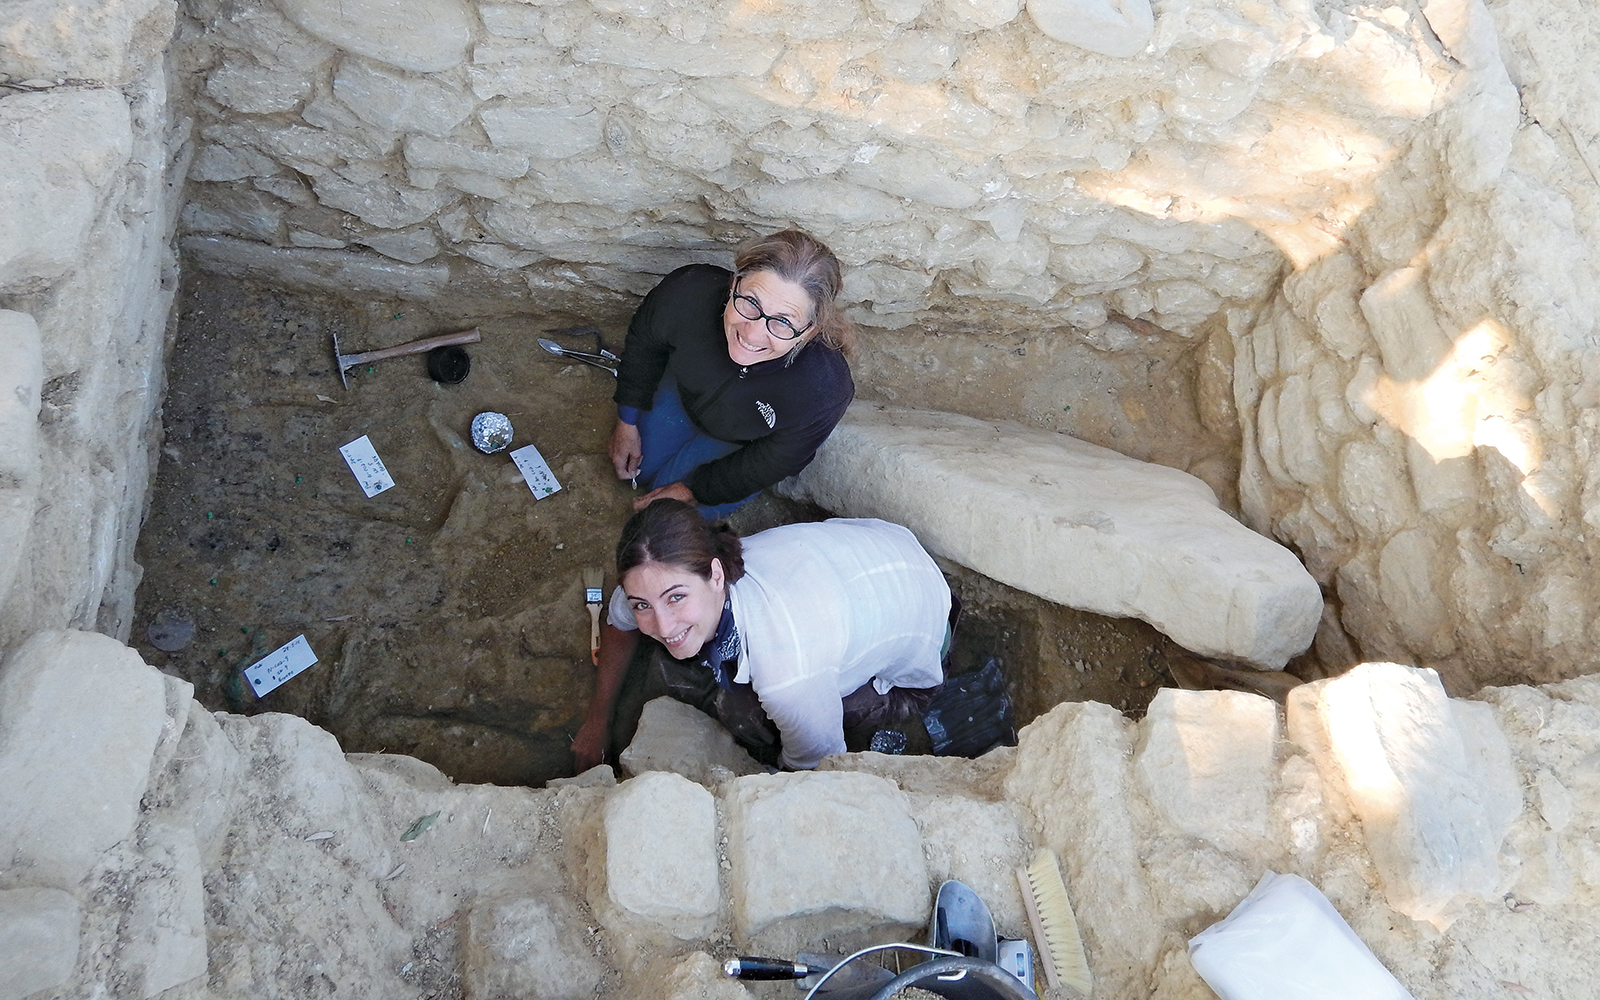 Stocker (top) and colleague Jonida Martini excavate the upper layer of artifacts immediately after bronze was discovered in the tomb.